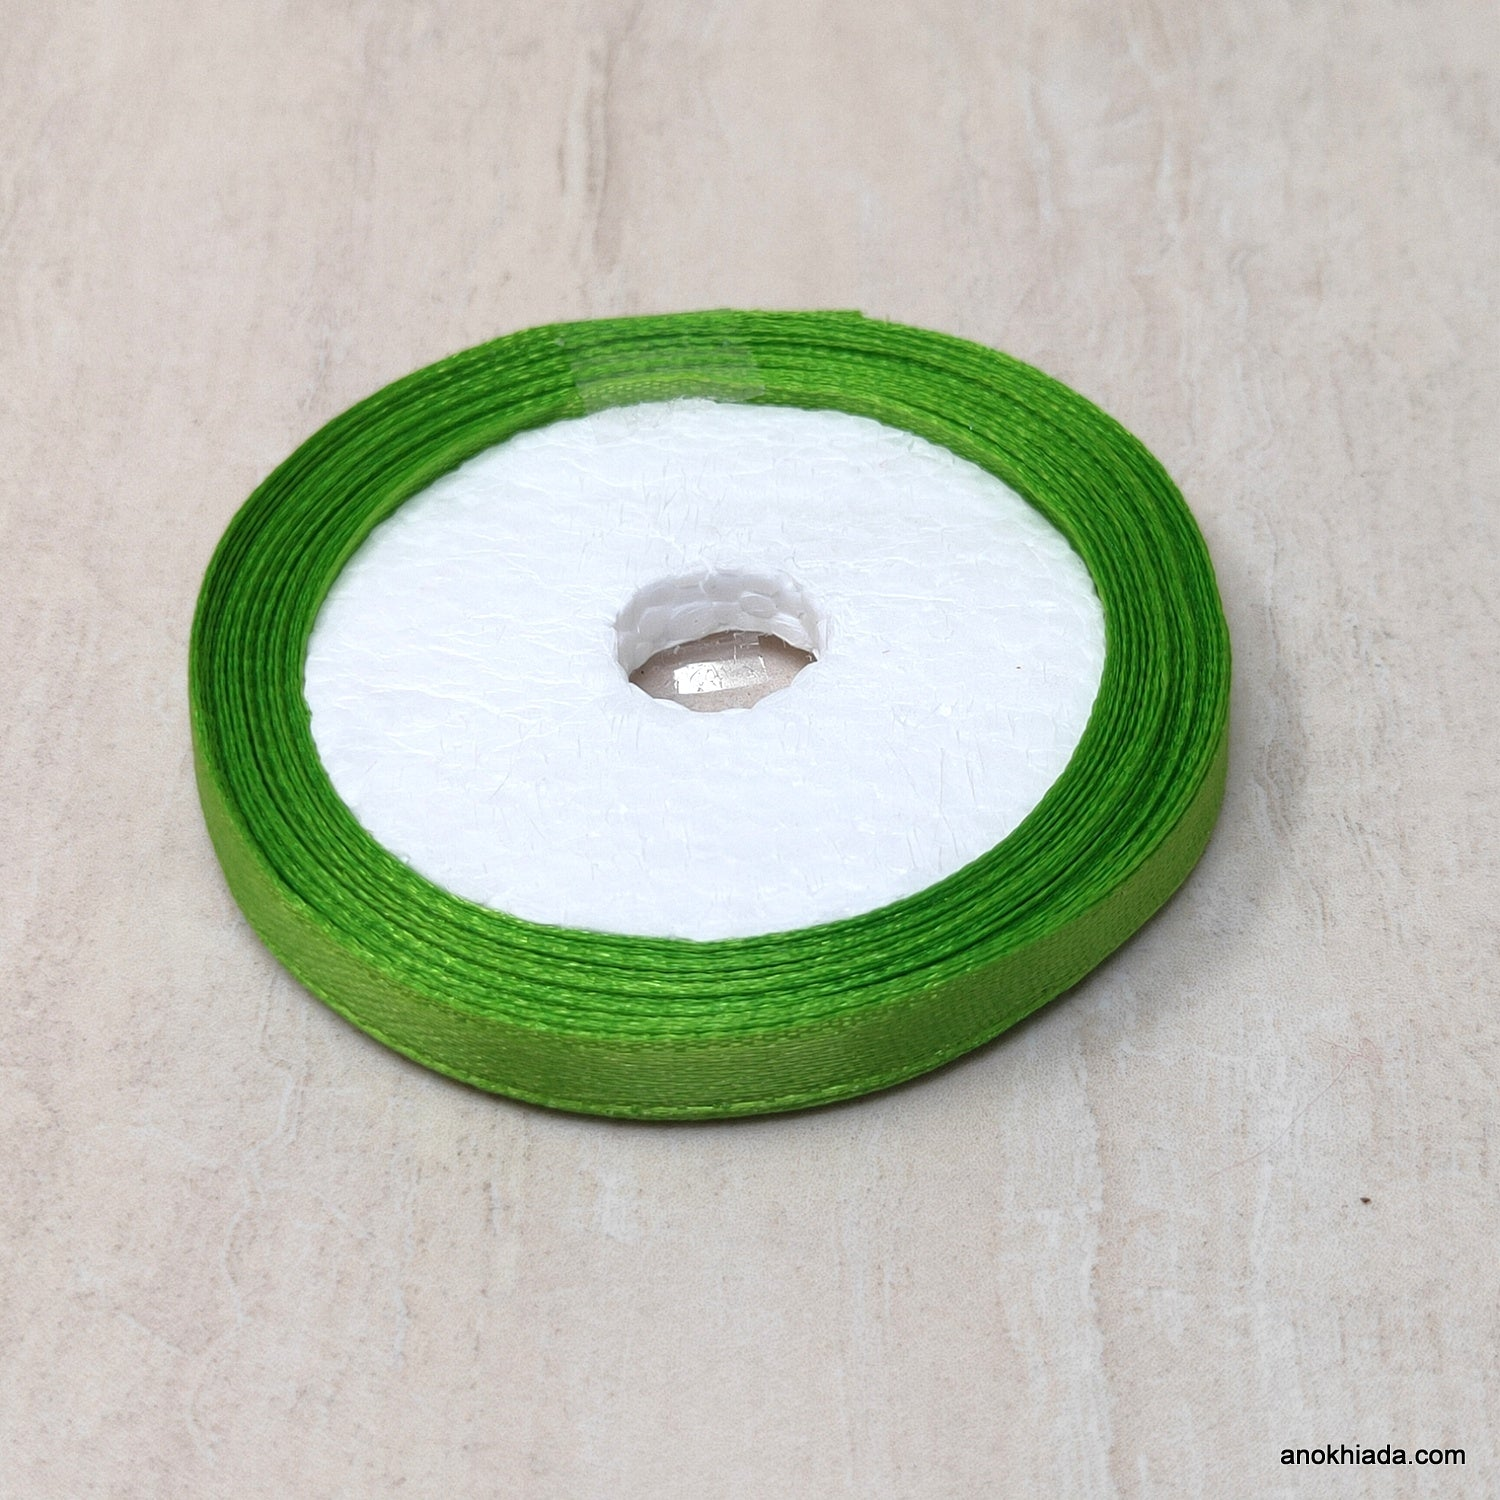 1/4 Inch (6.5 mm) Green Satin Ribbon (031)